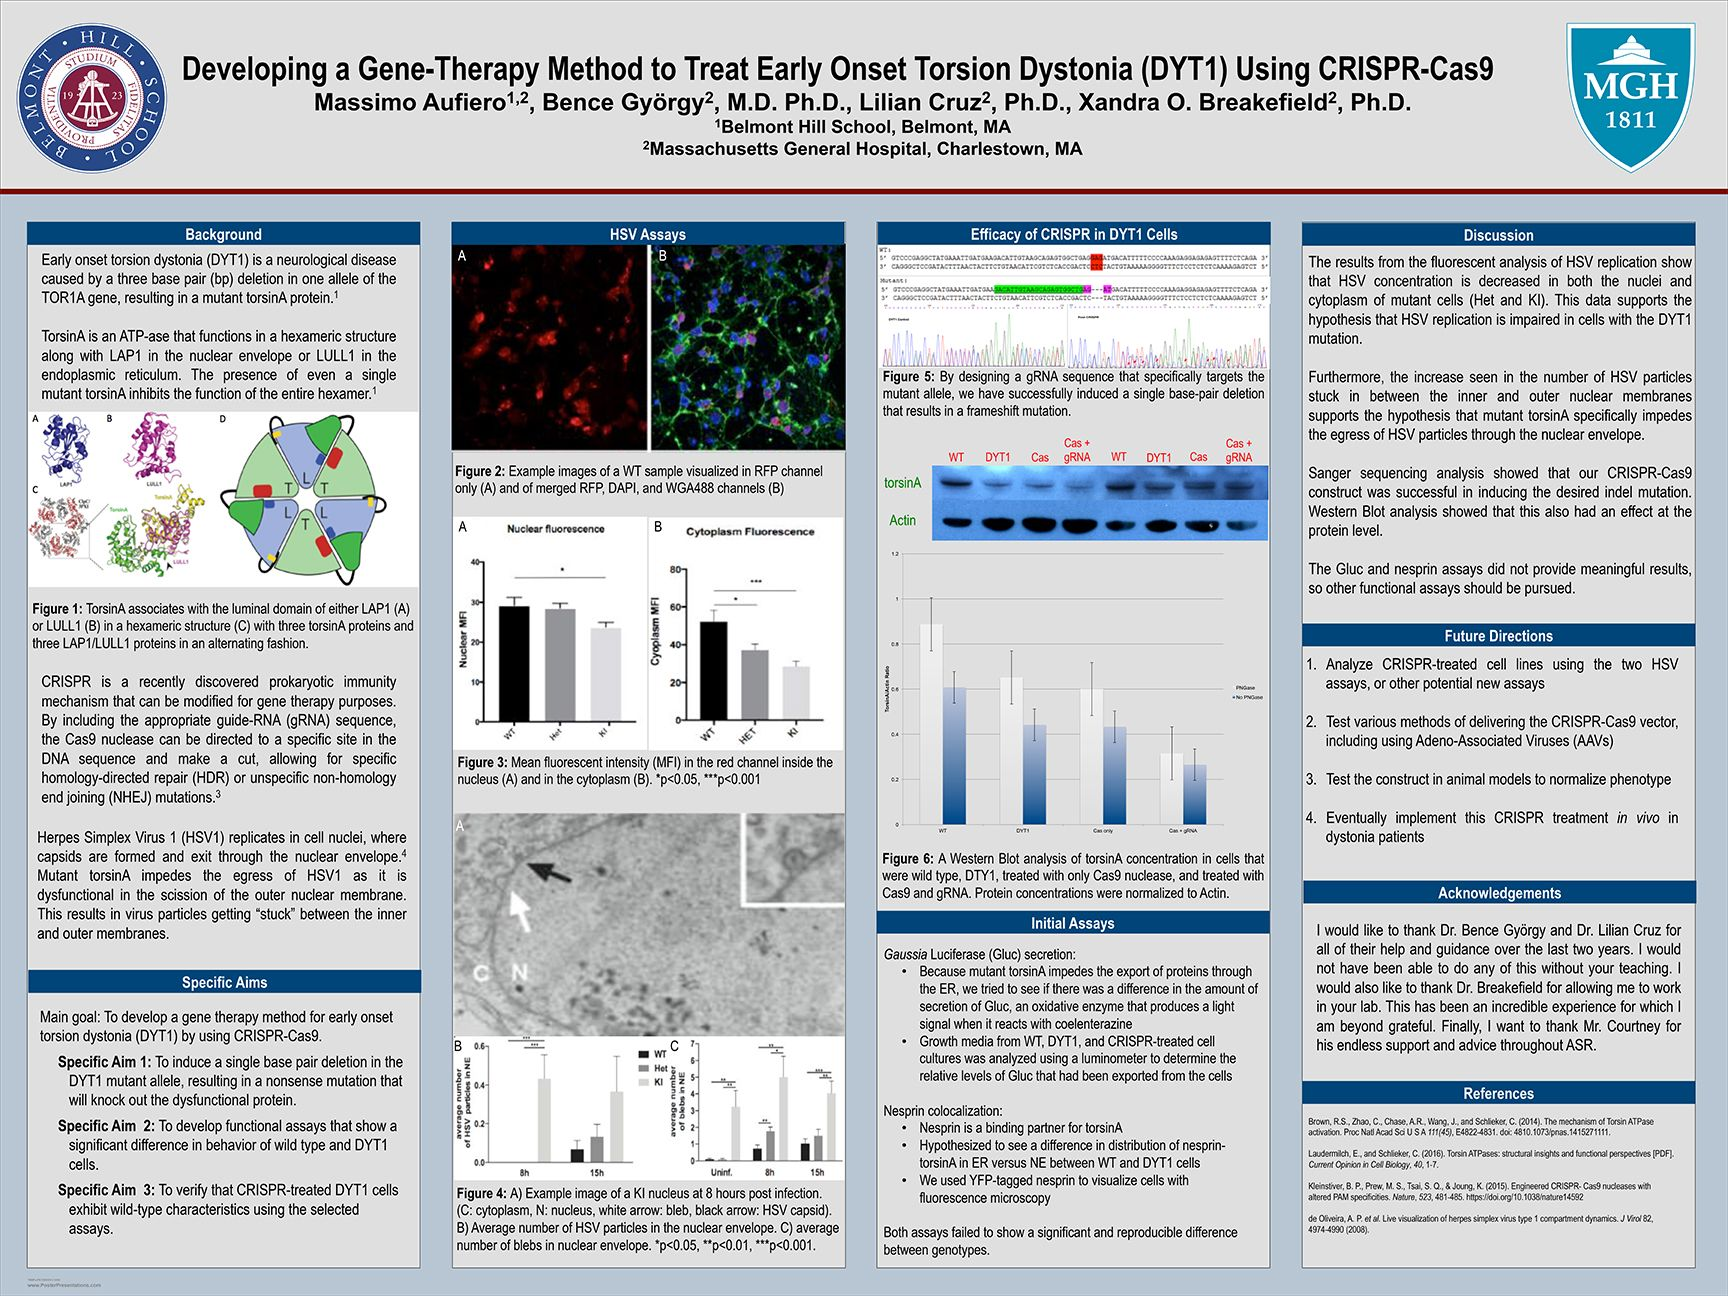 Massimo Aufiero '18 - Developing a Gene-Therapy Method to Treat Early Onset Torsion Dystonia (DYT1) Using CRISPR-Cas9